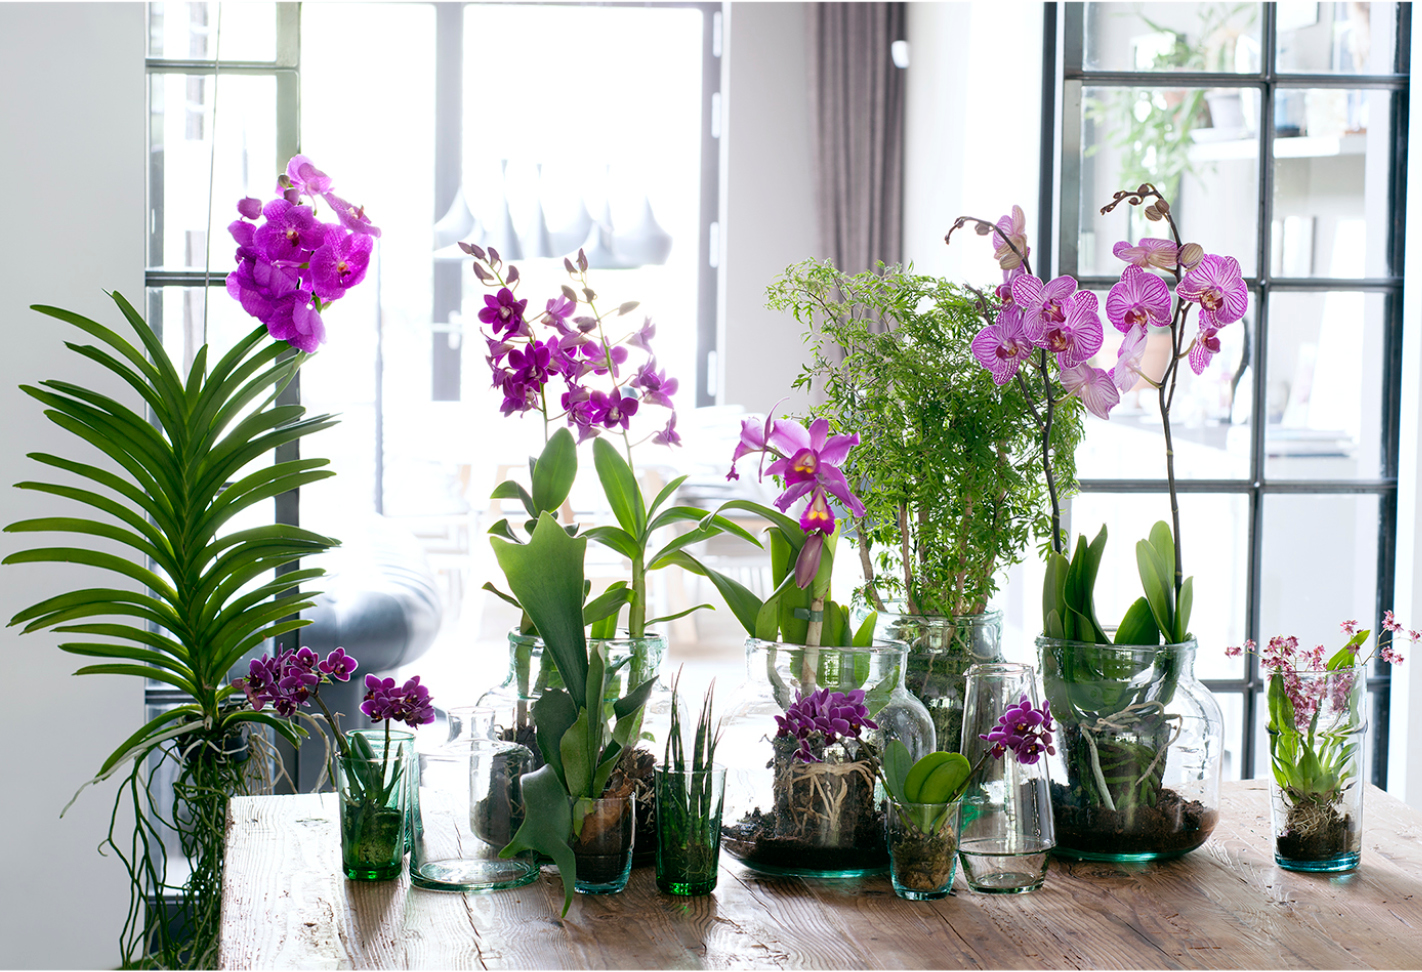 Vanda, Phalaenopsis, Cattley and Brassia in an urban junle